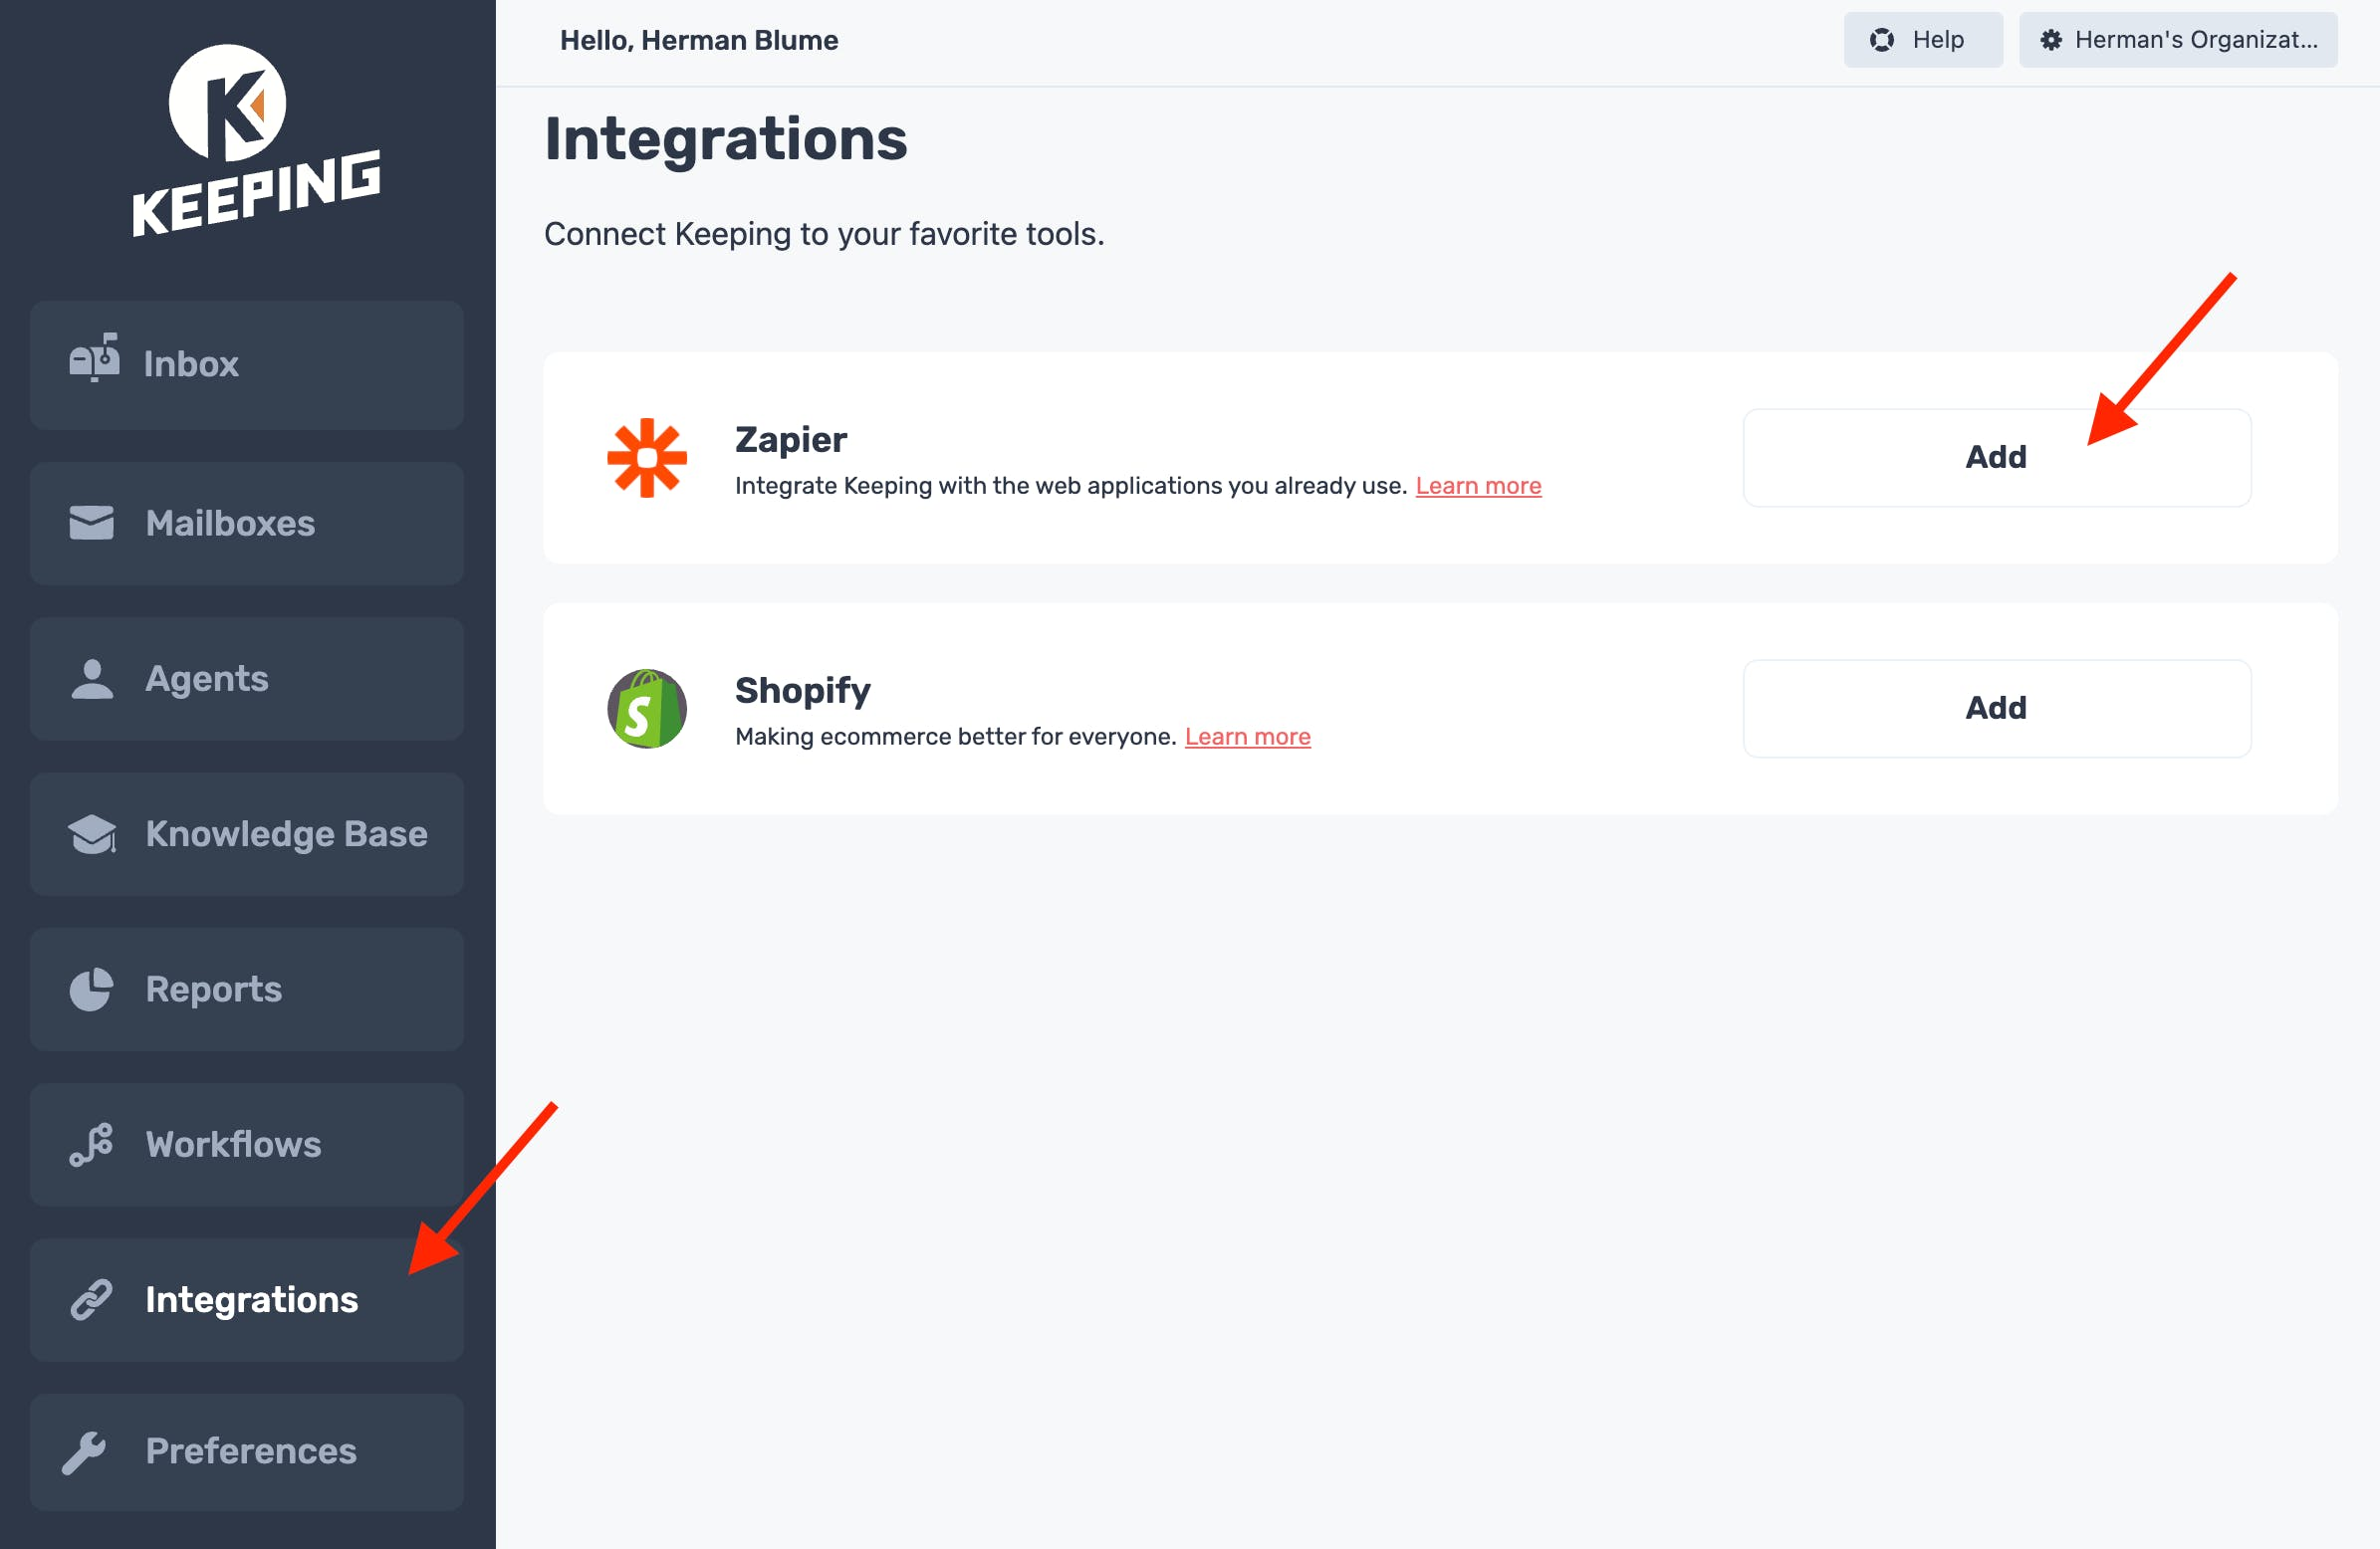 Add the Zapier integration on Keeping